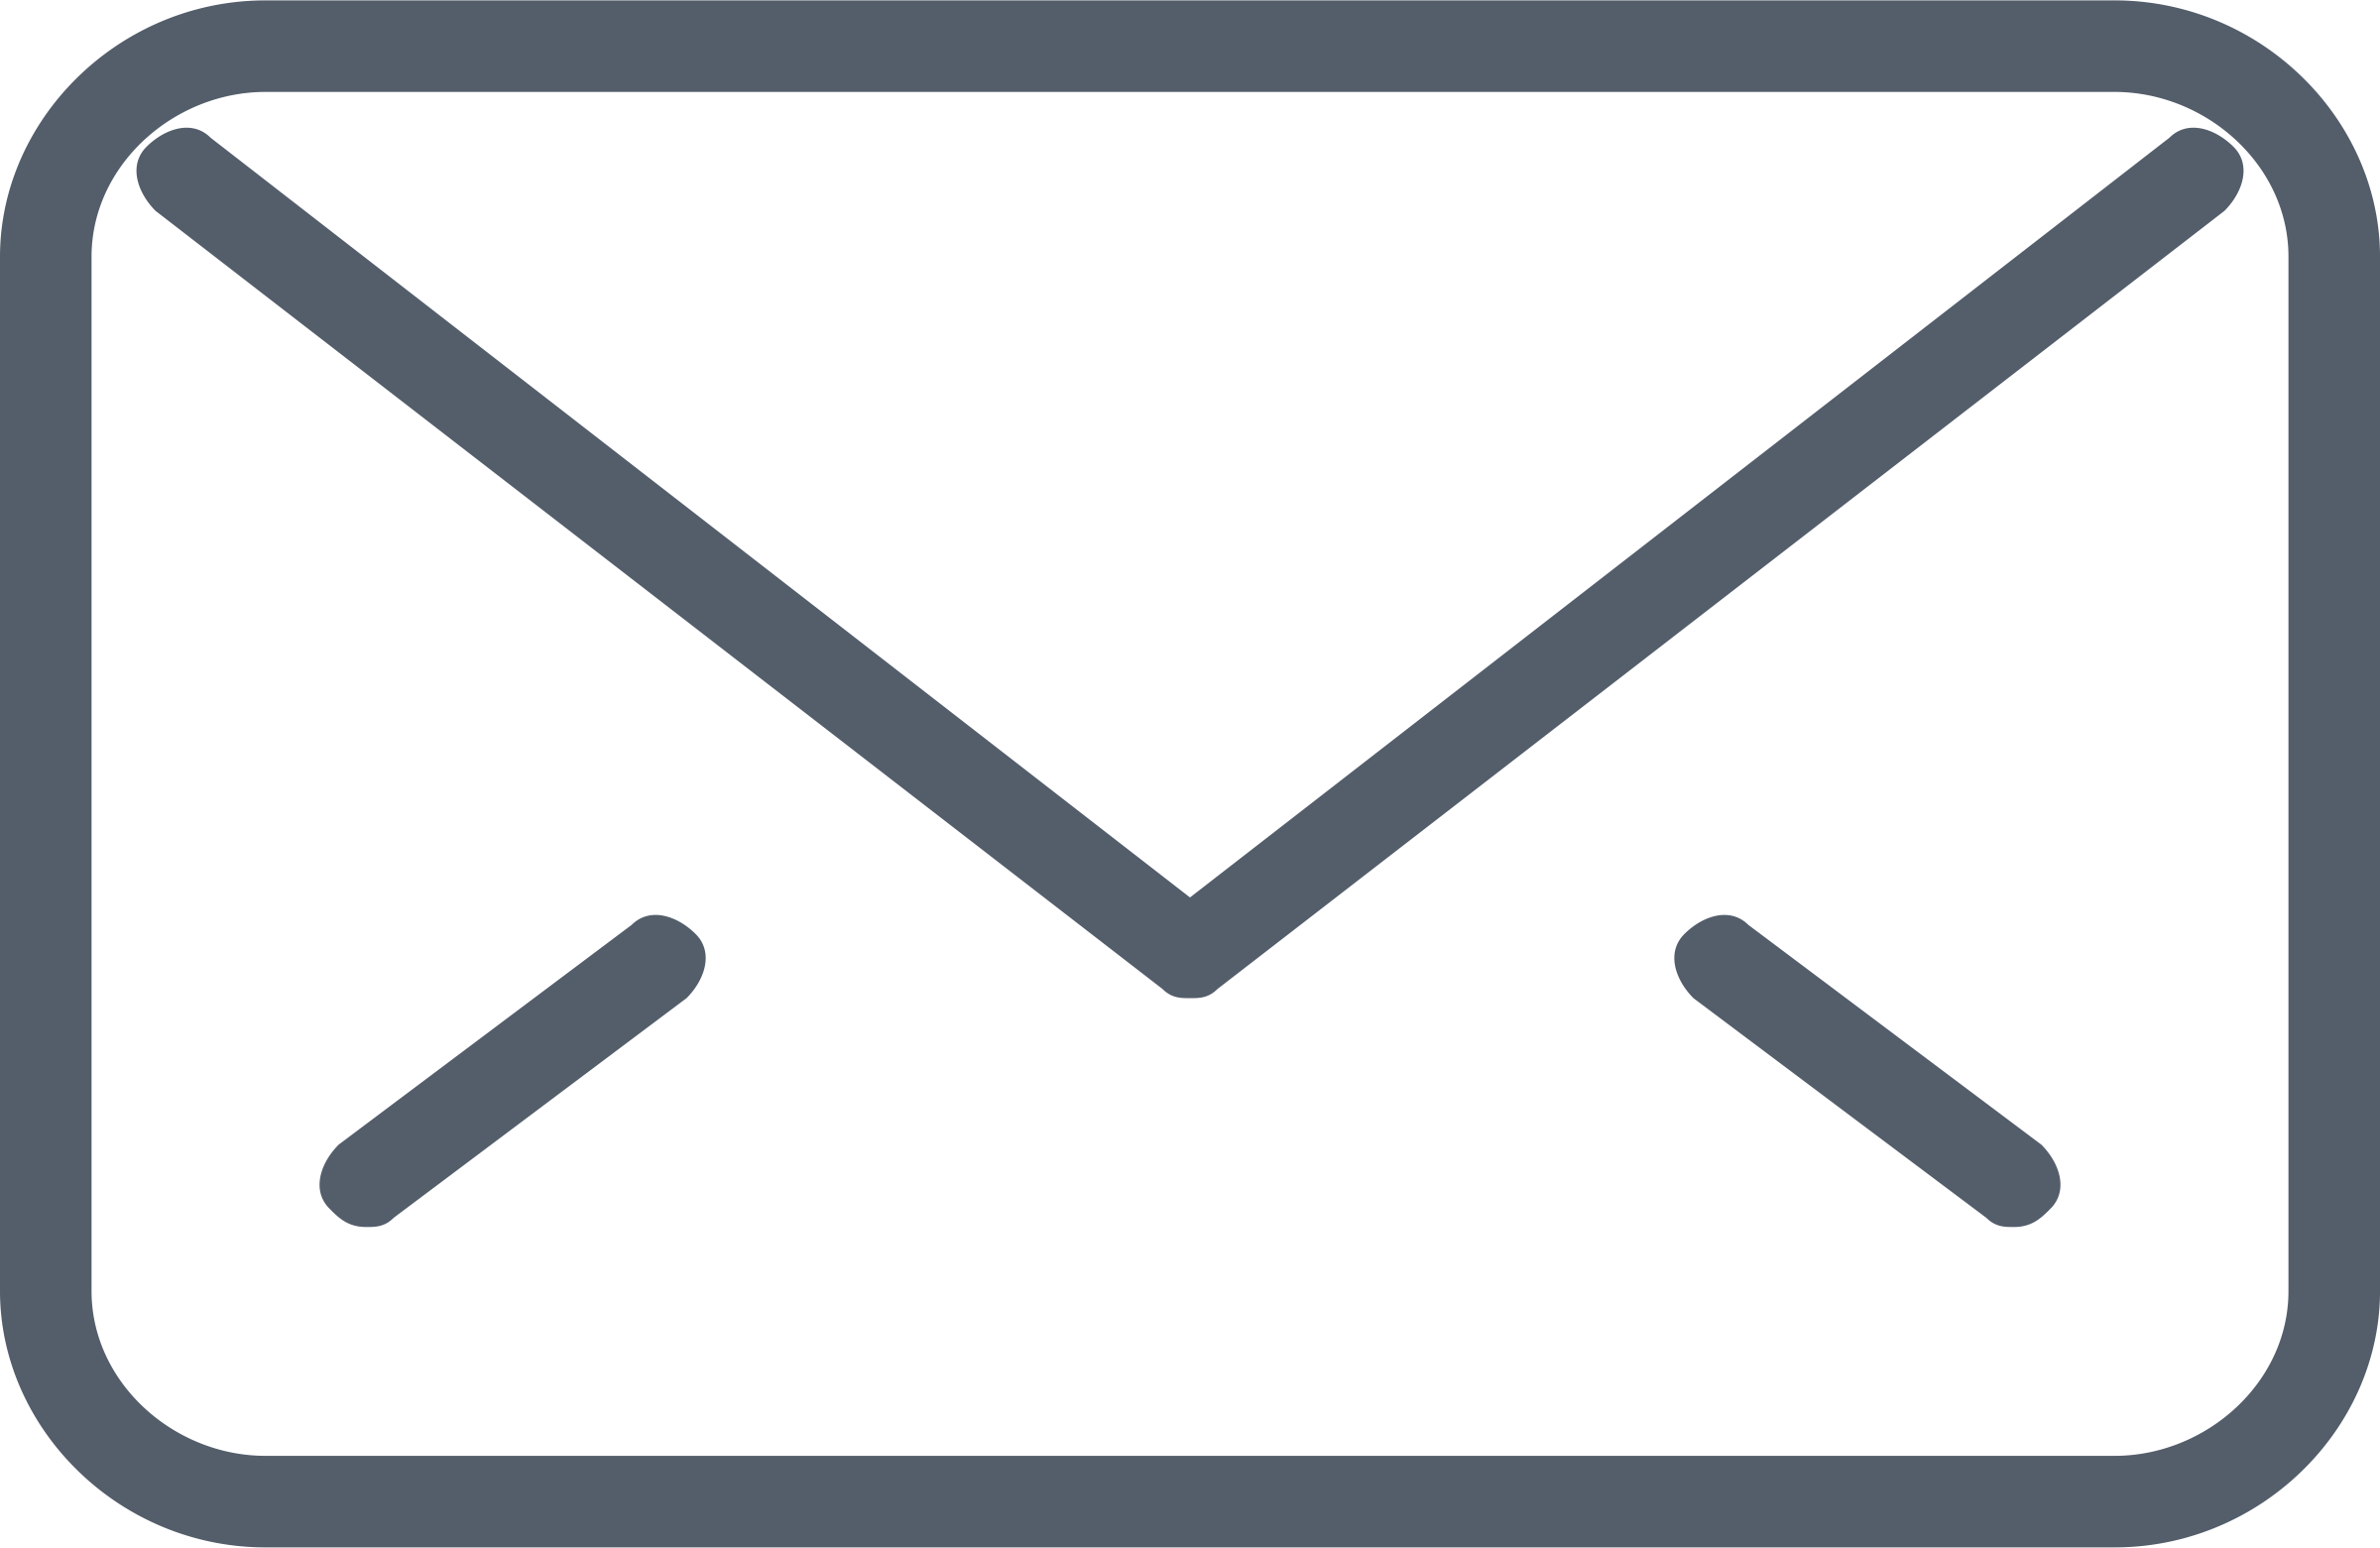 Email symbol clipart clipart kid.